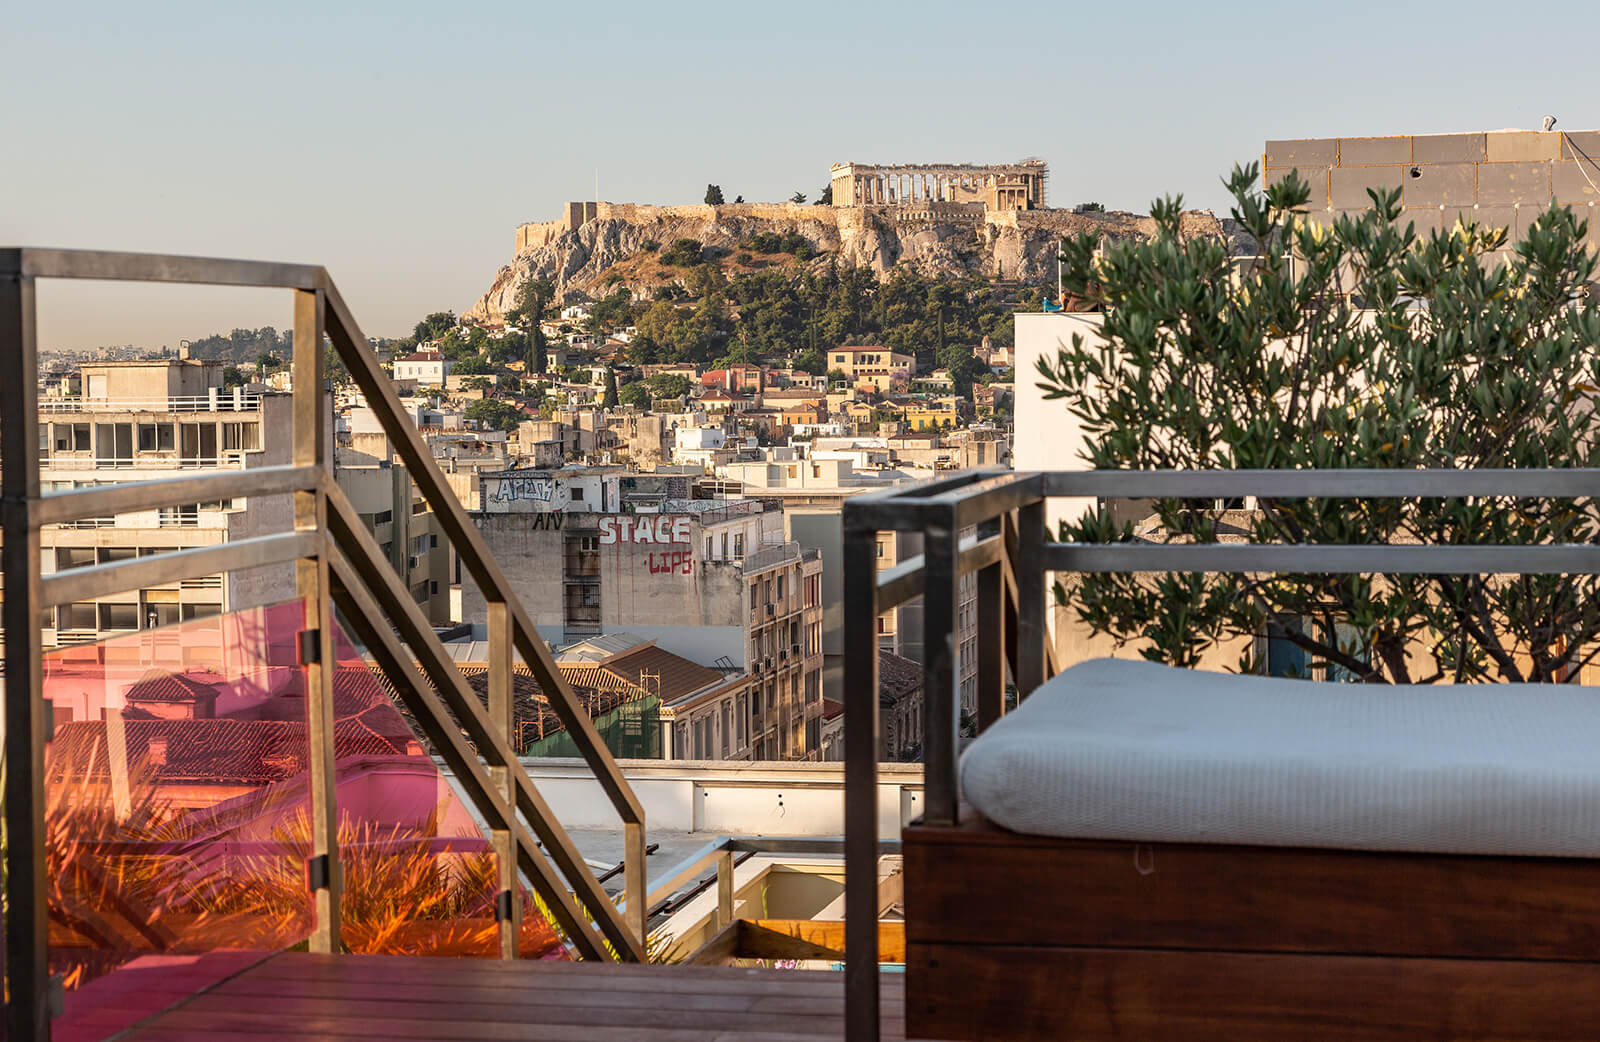 A shot of the Acropolis from a rooftop pool bar